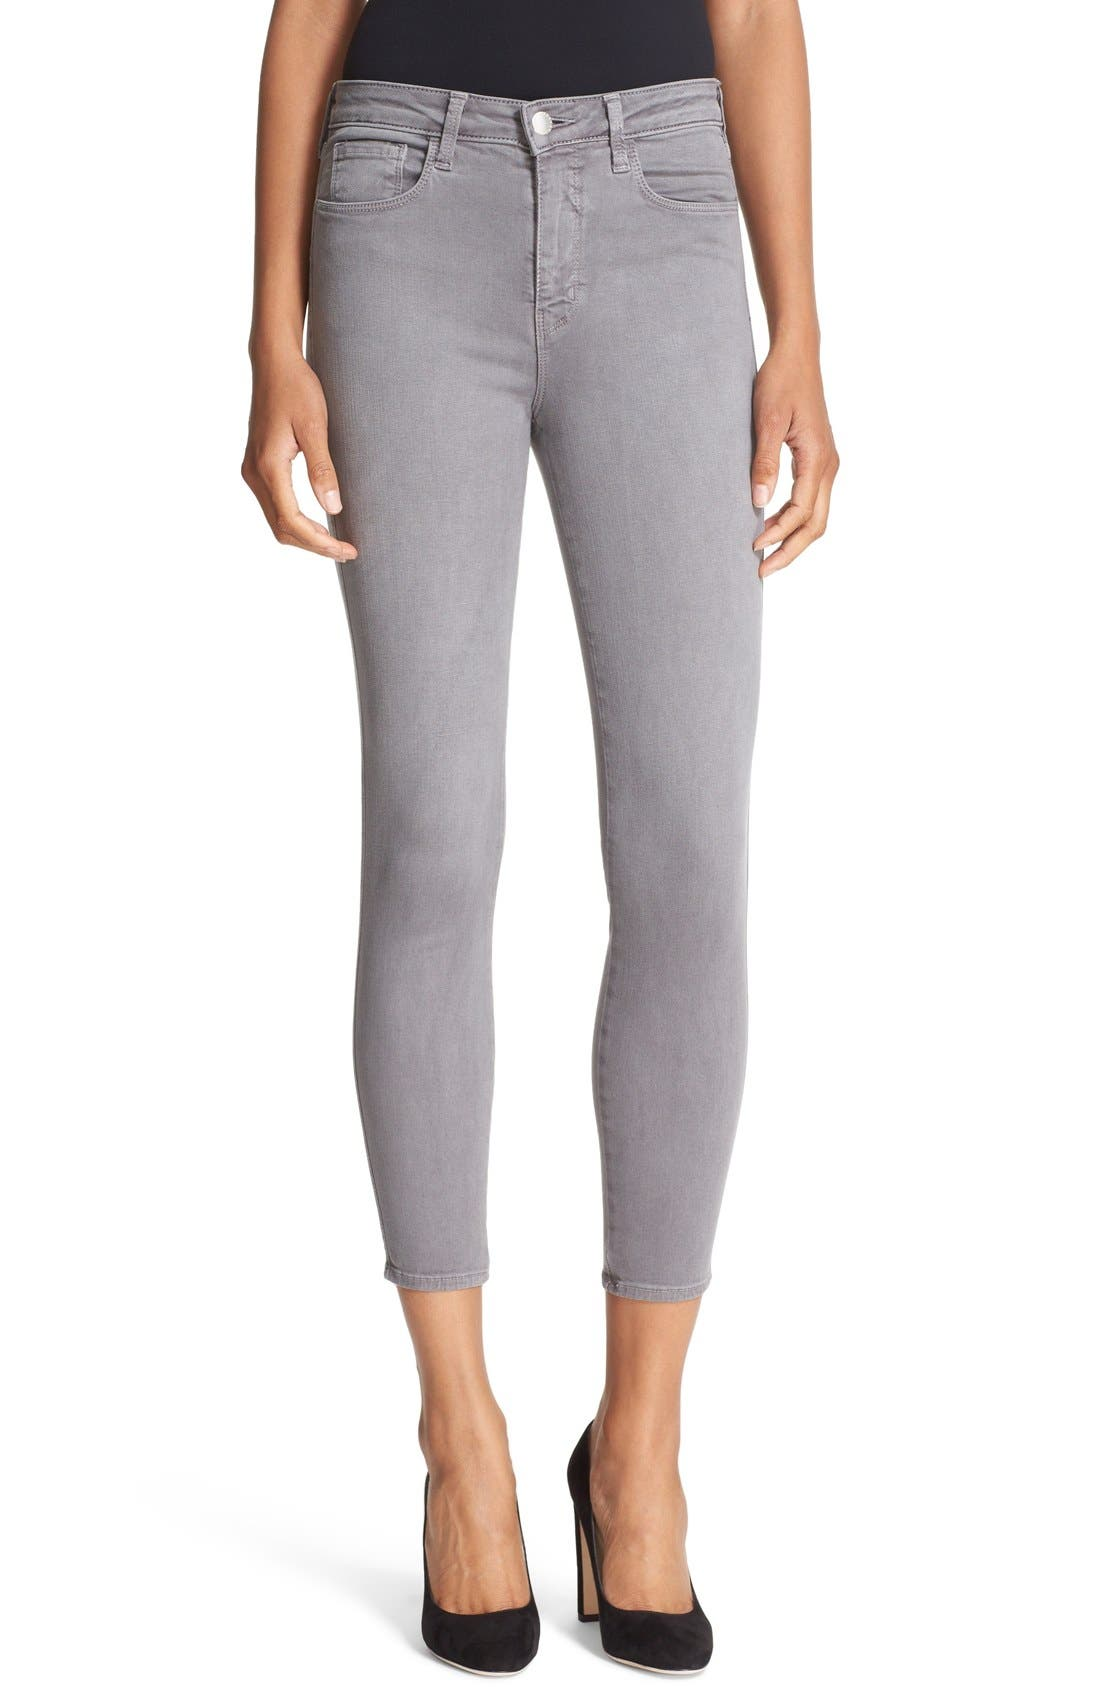 L'AGENCE High Waist Skinny Ankle Jeans